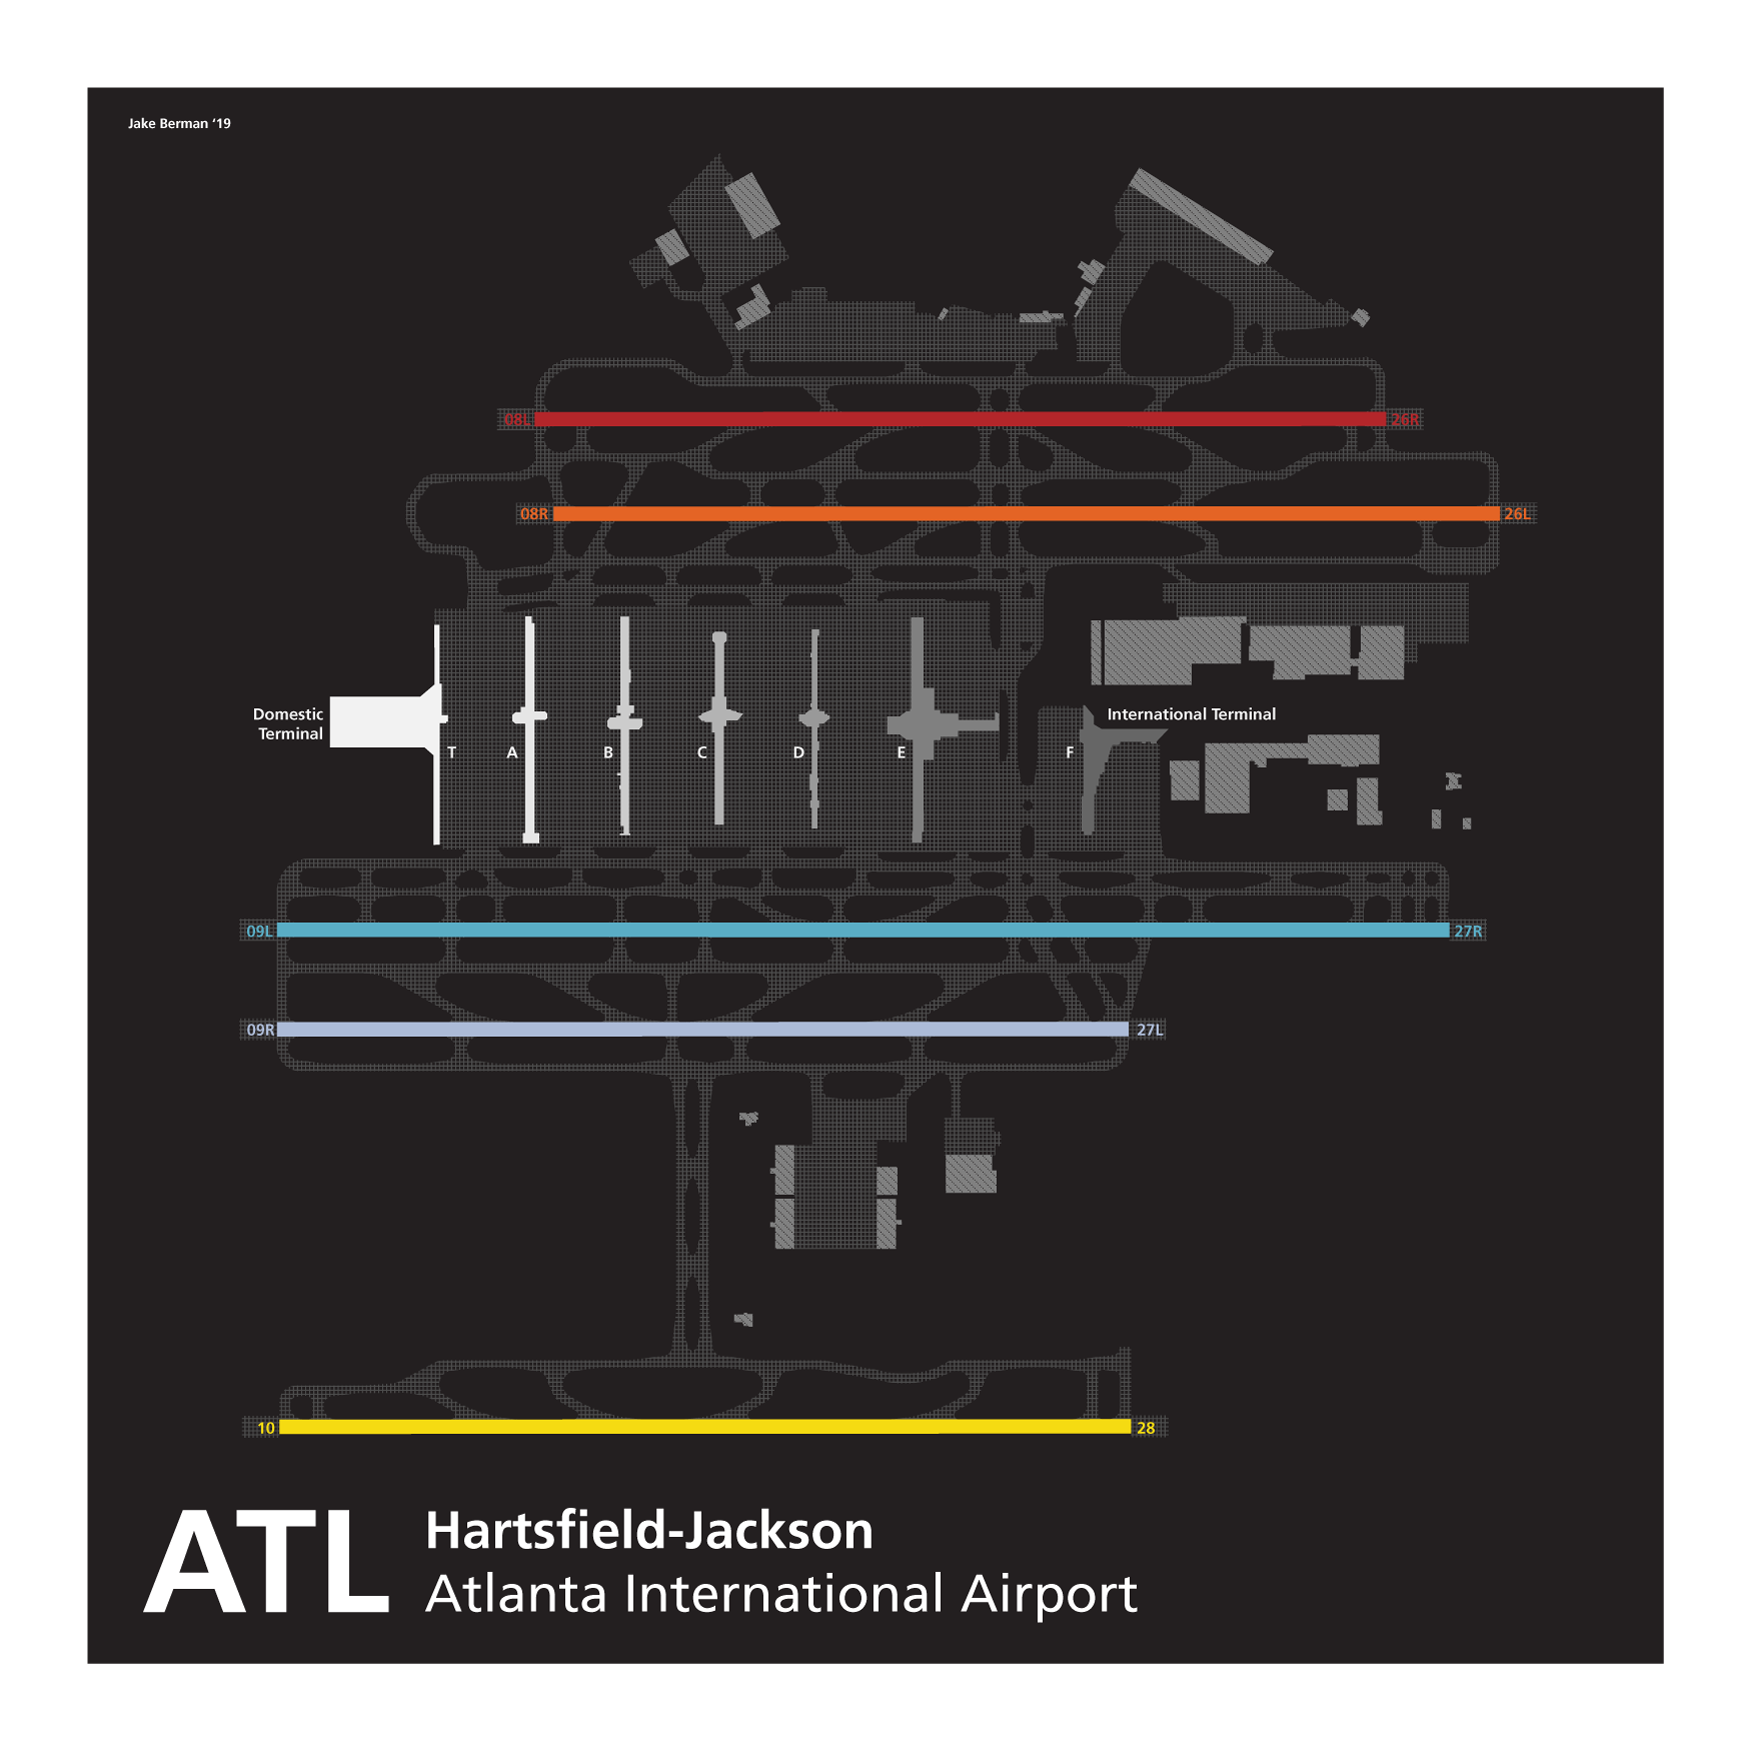 Atlanta Hartsfield-Jackson International Airport map